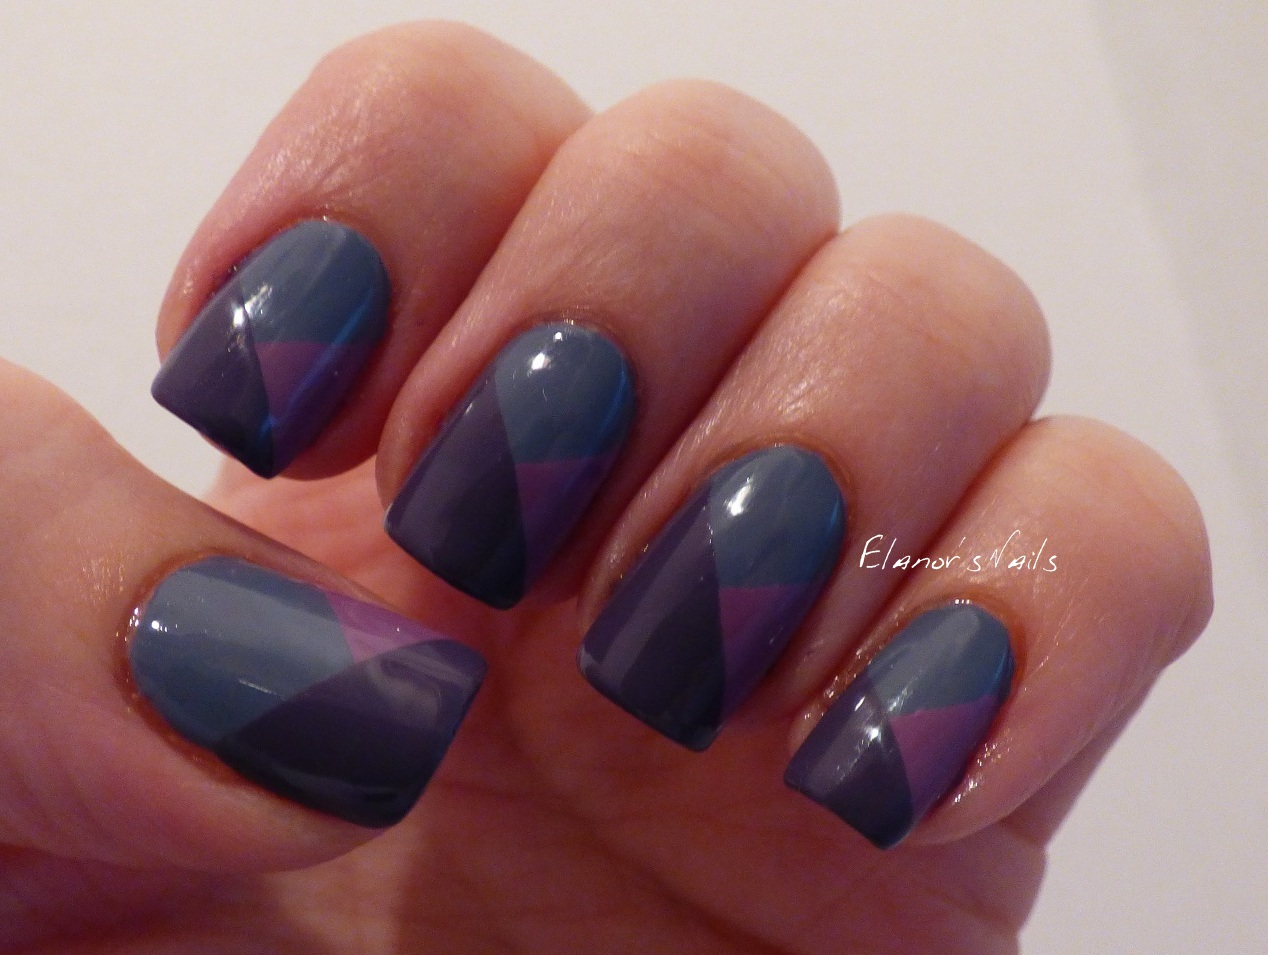 Elanors nails september 2015 i really like how these colours go together so i also used them for a couple of nail art looks first off i used sellotape to make a simple blocked tape prinsesfo Gallery